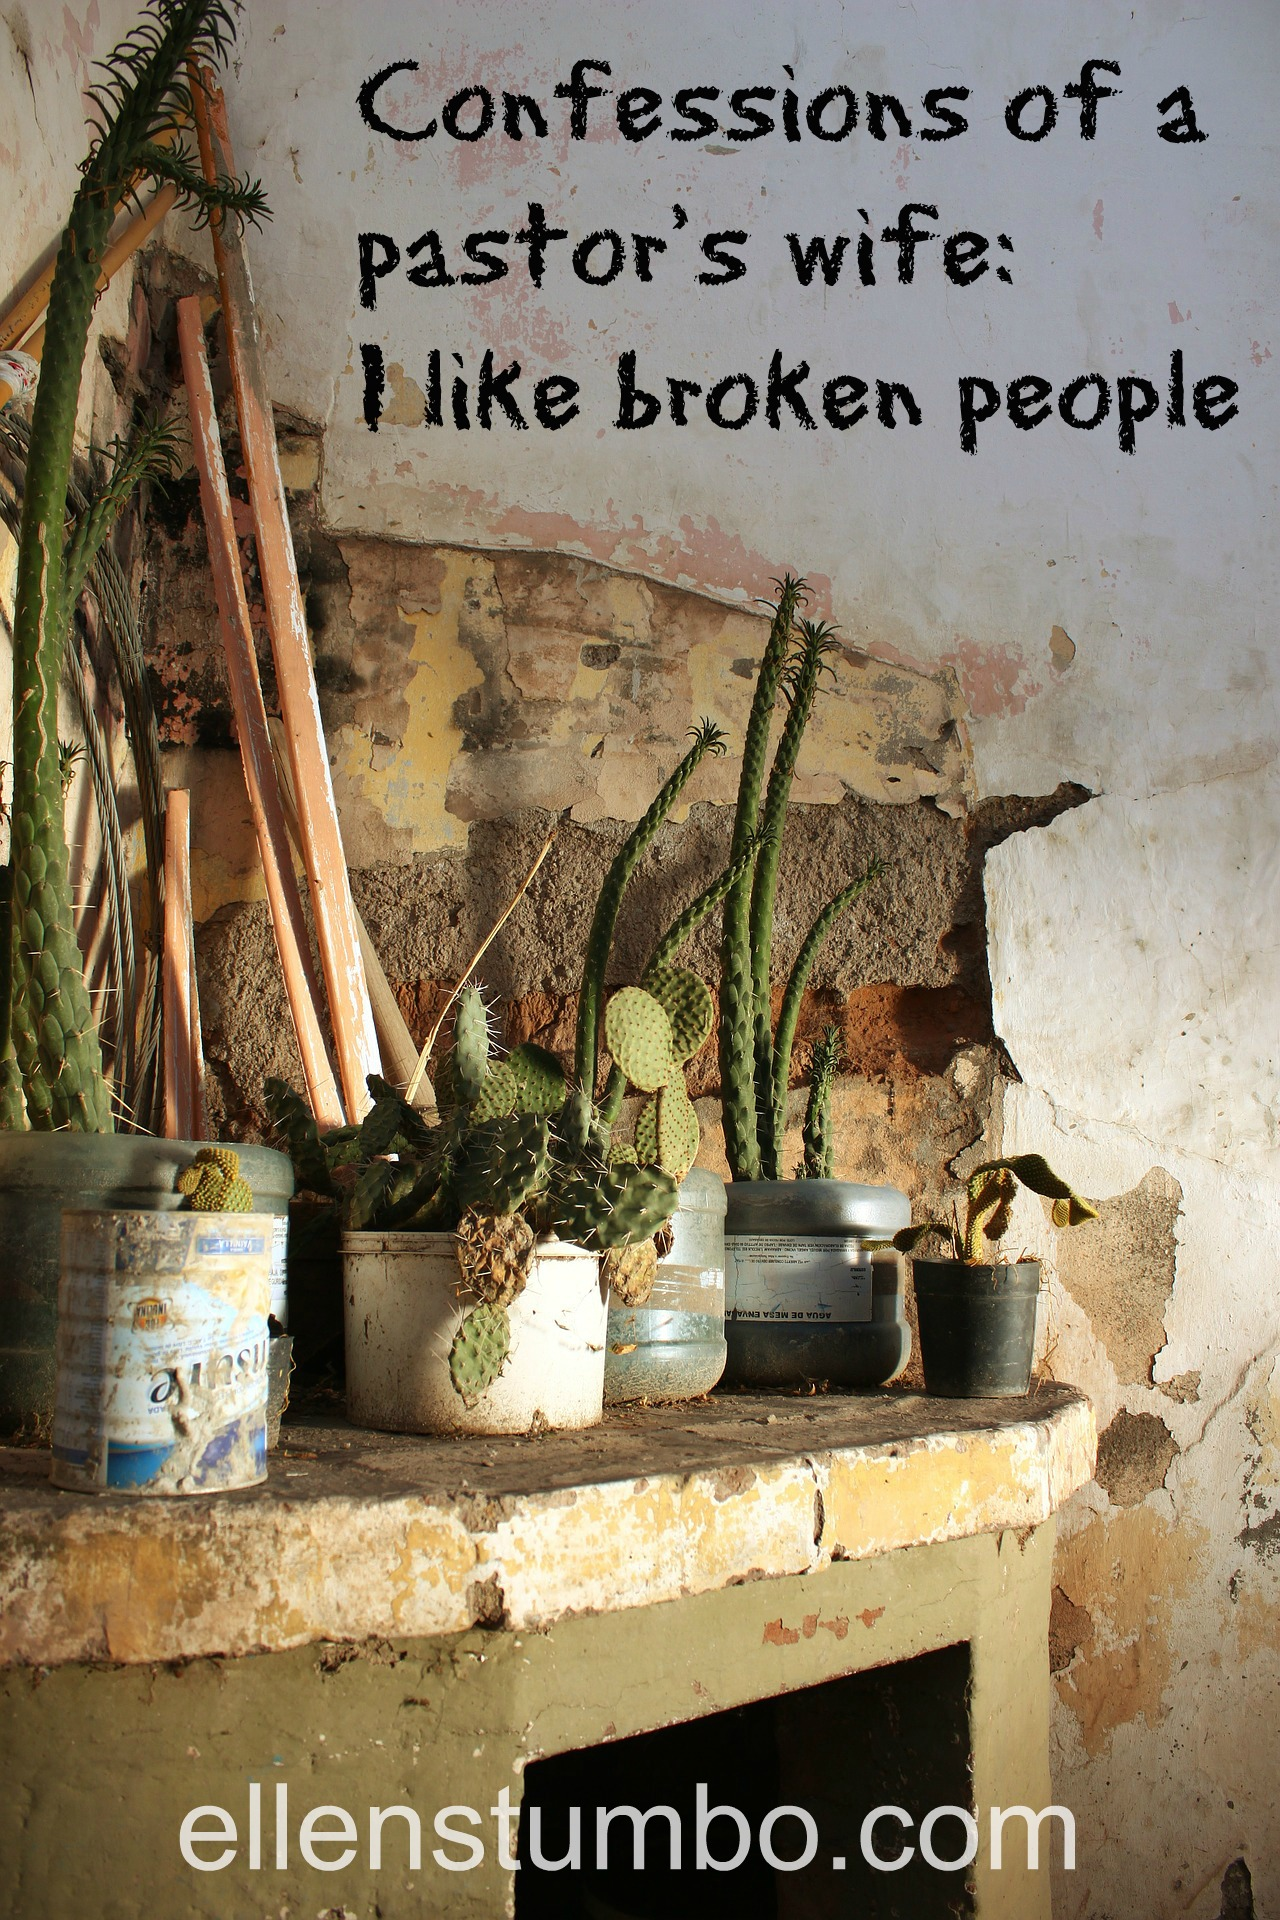 Confessions of a pastor's wife: I like broken people